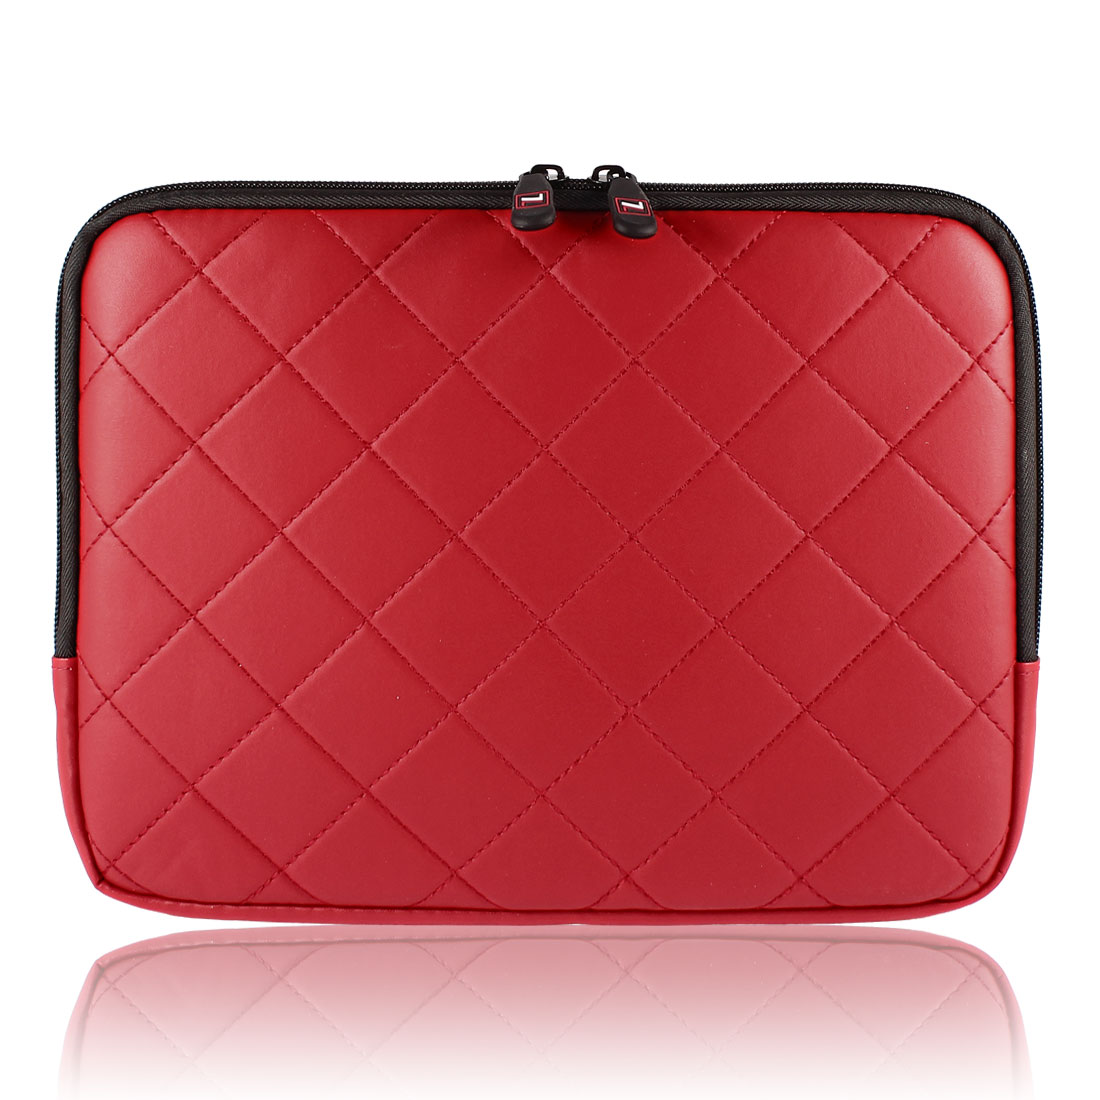 "10"" 10.1"" 10.2"" Red Faux Leather Laptop Sleeve Bag Case + Zipper"